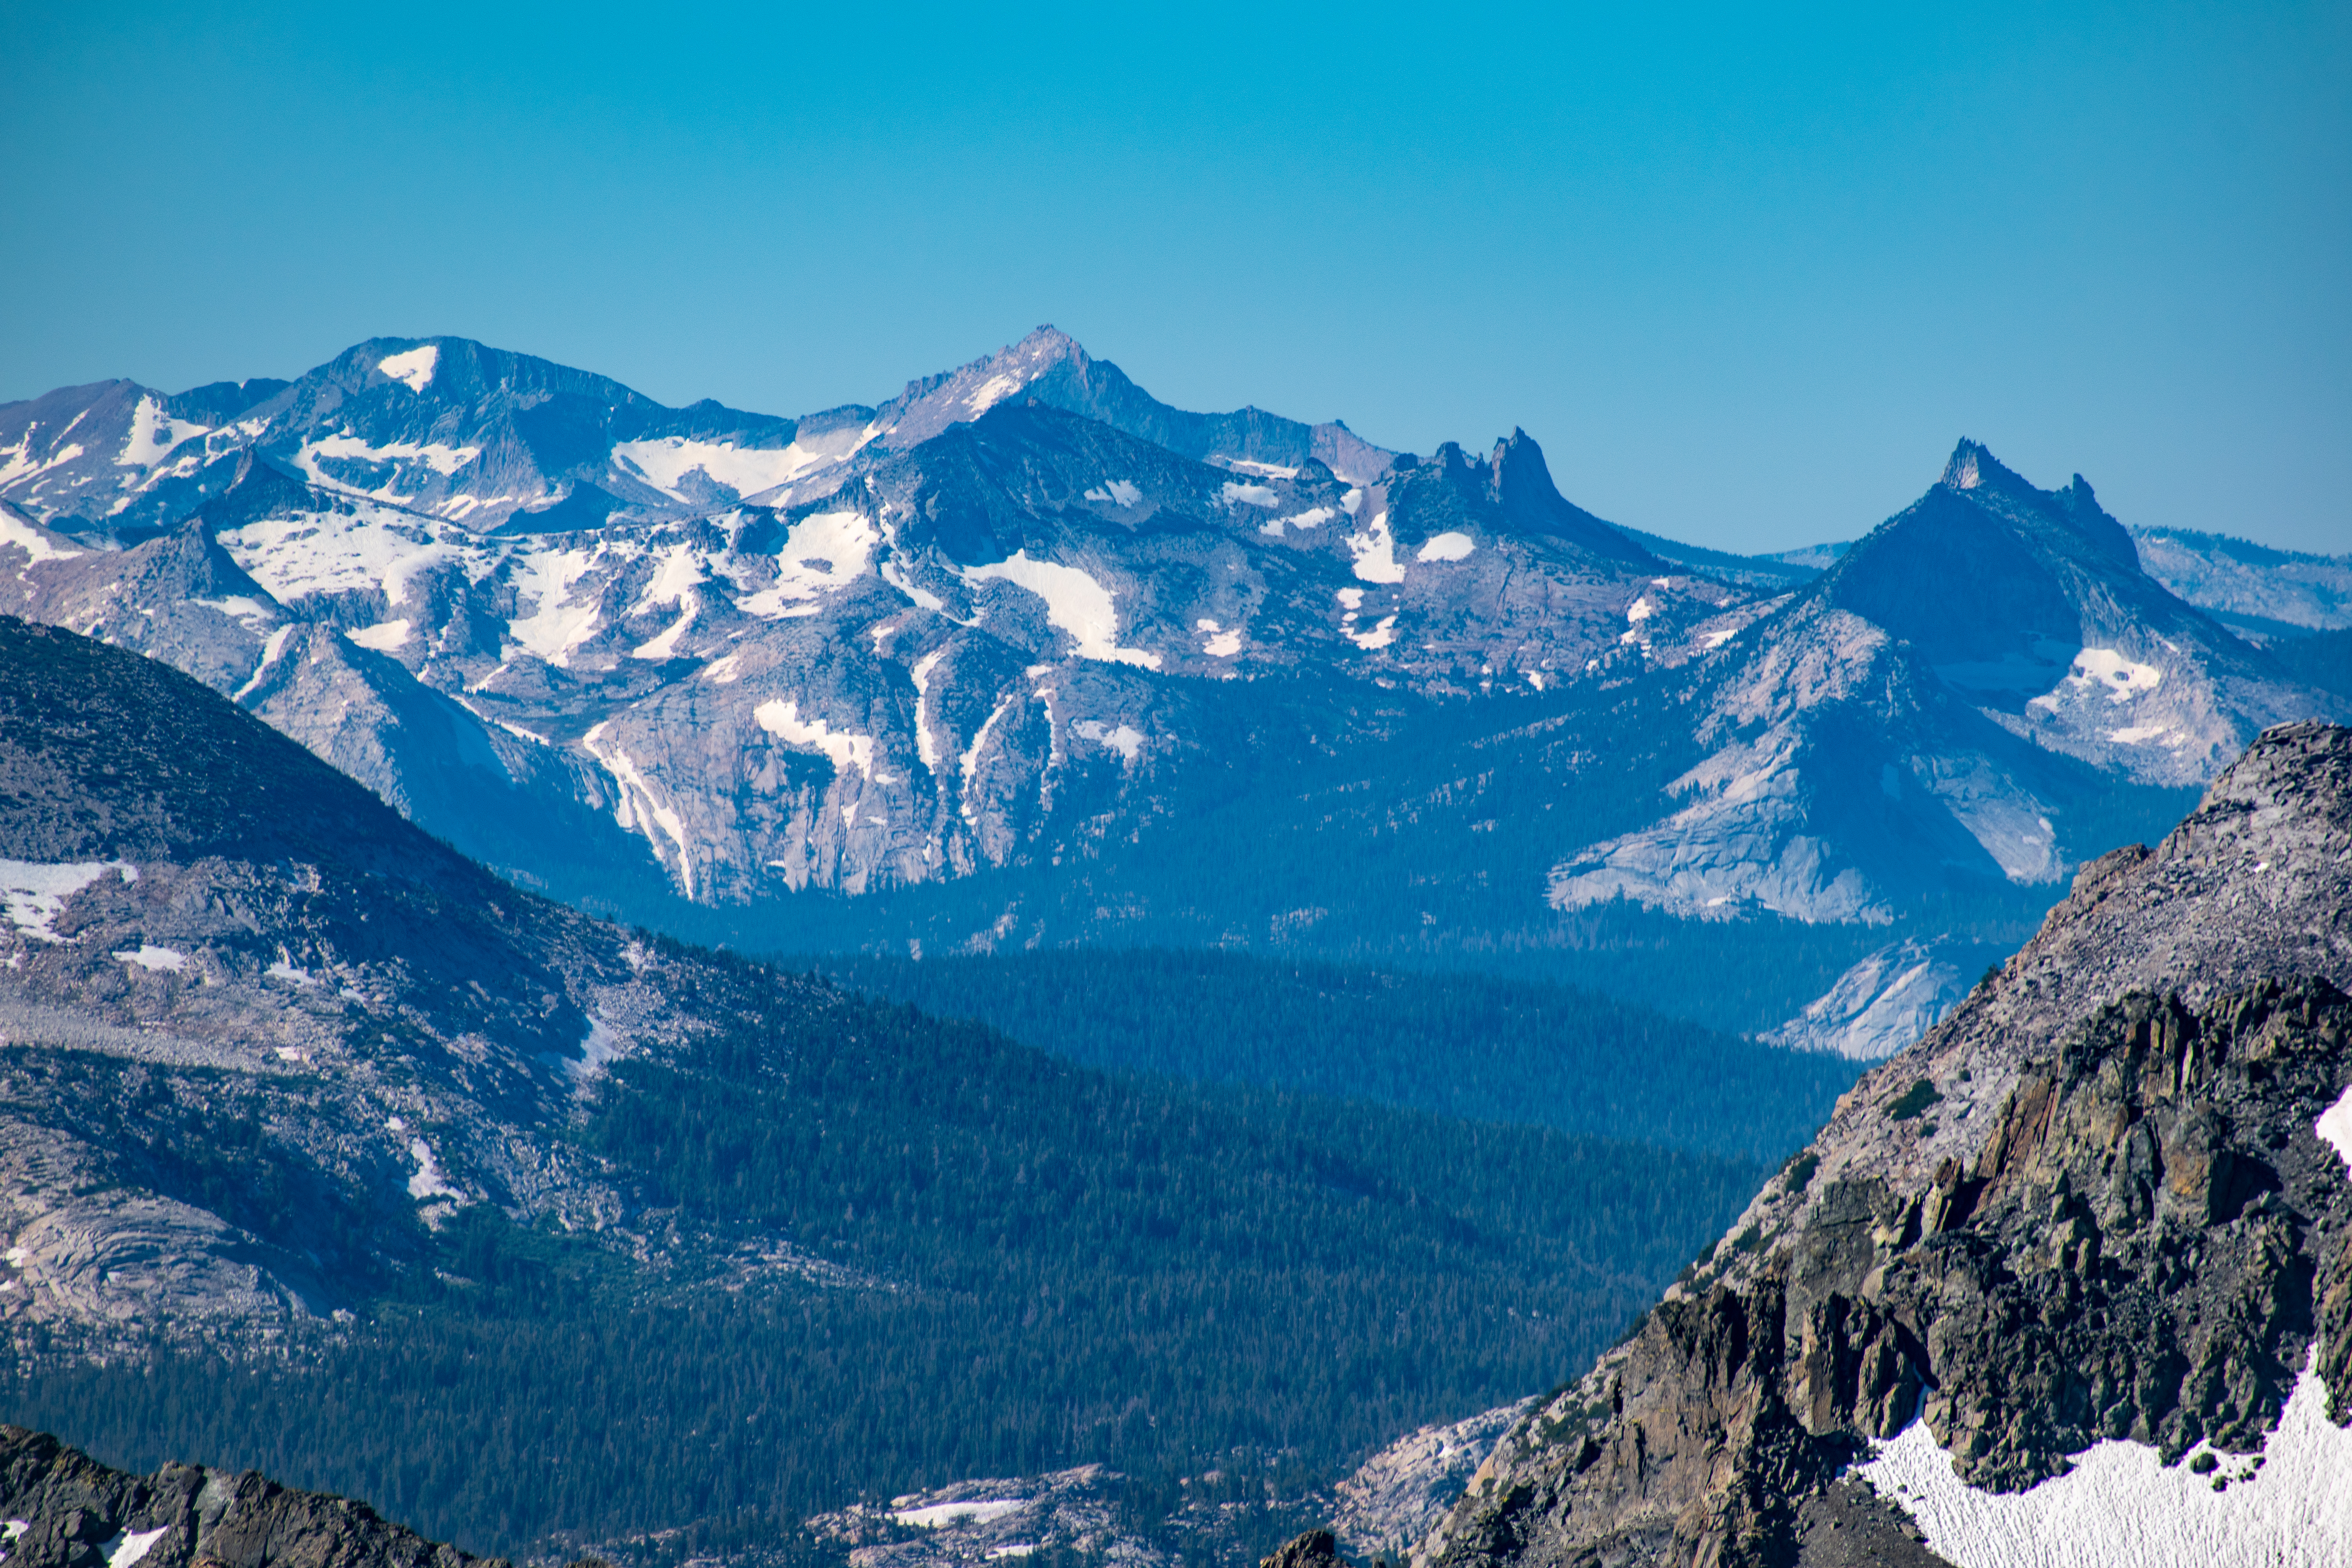 The Cathedral Crest, including Unicorn Peak, Cockscomb, Echo Ridge, Echo Peaks, and Cathedral Peak; Gray Peak and Mt Clark beyond.